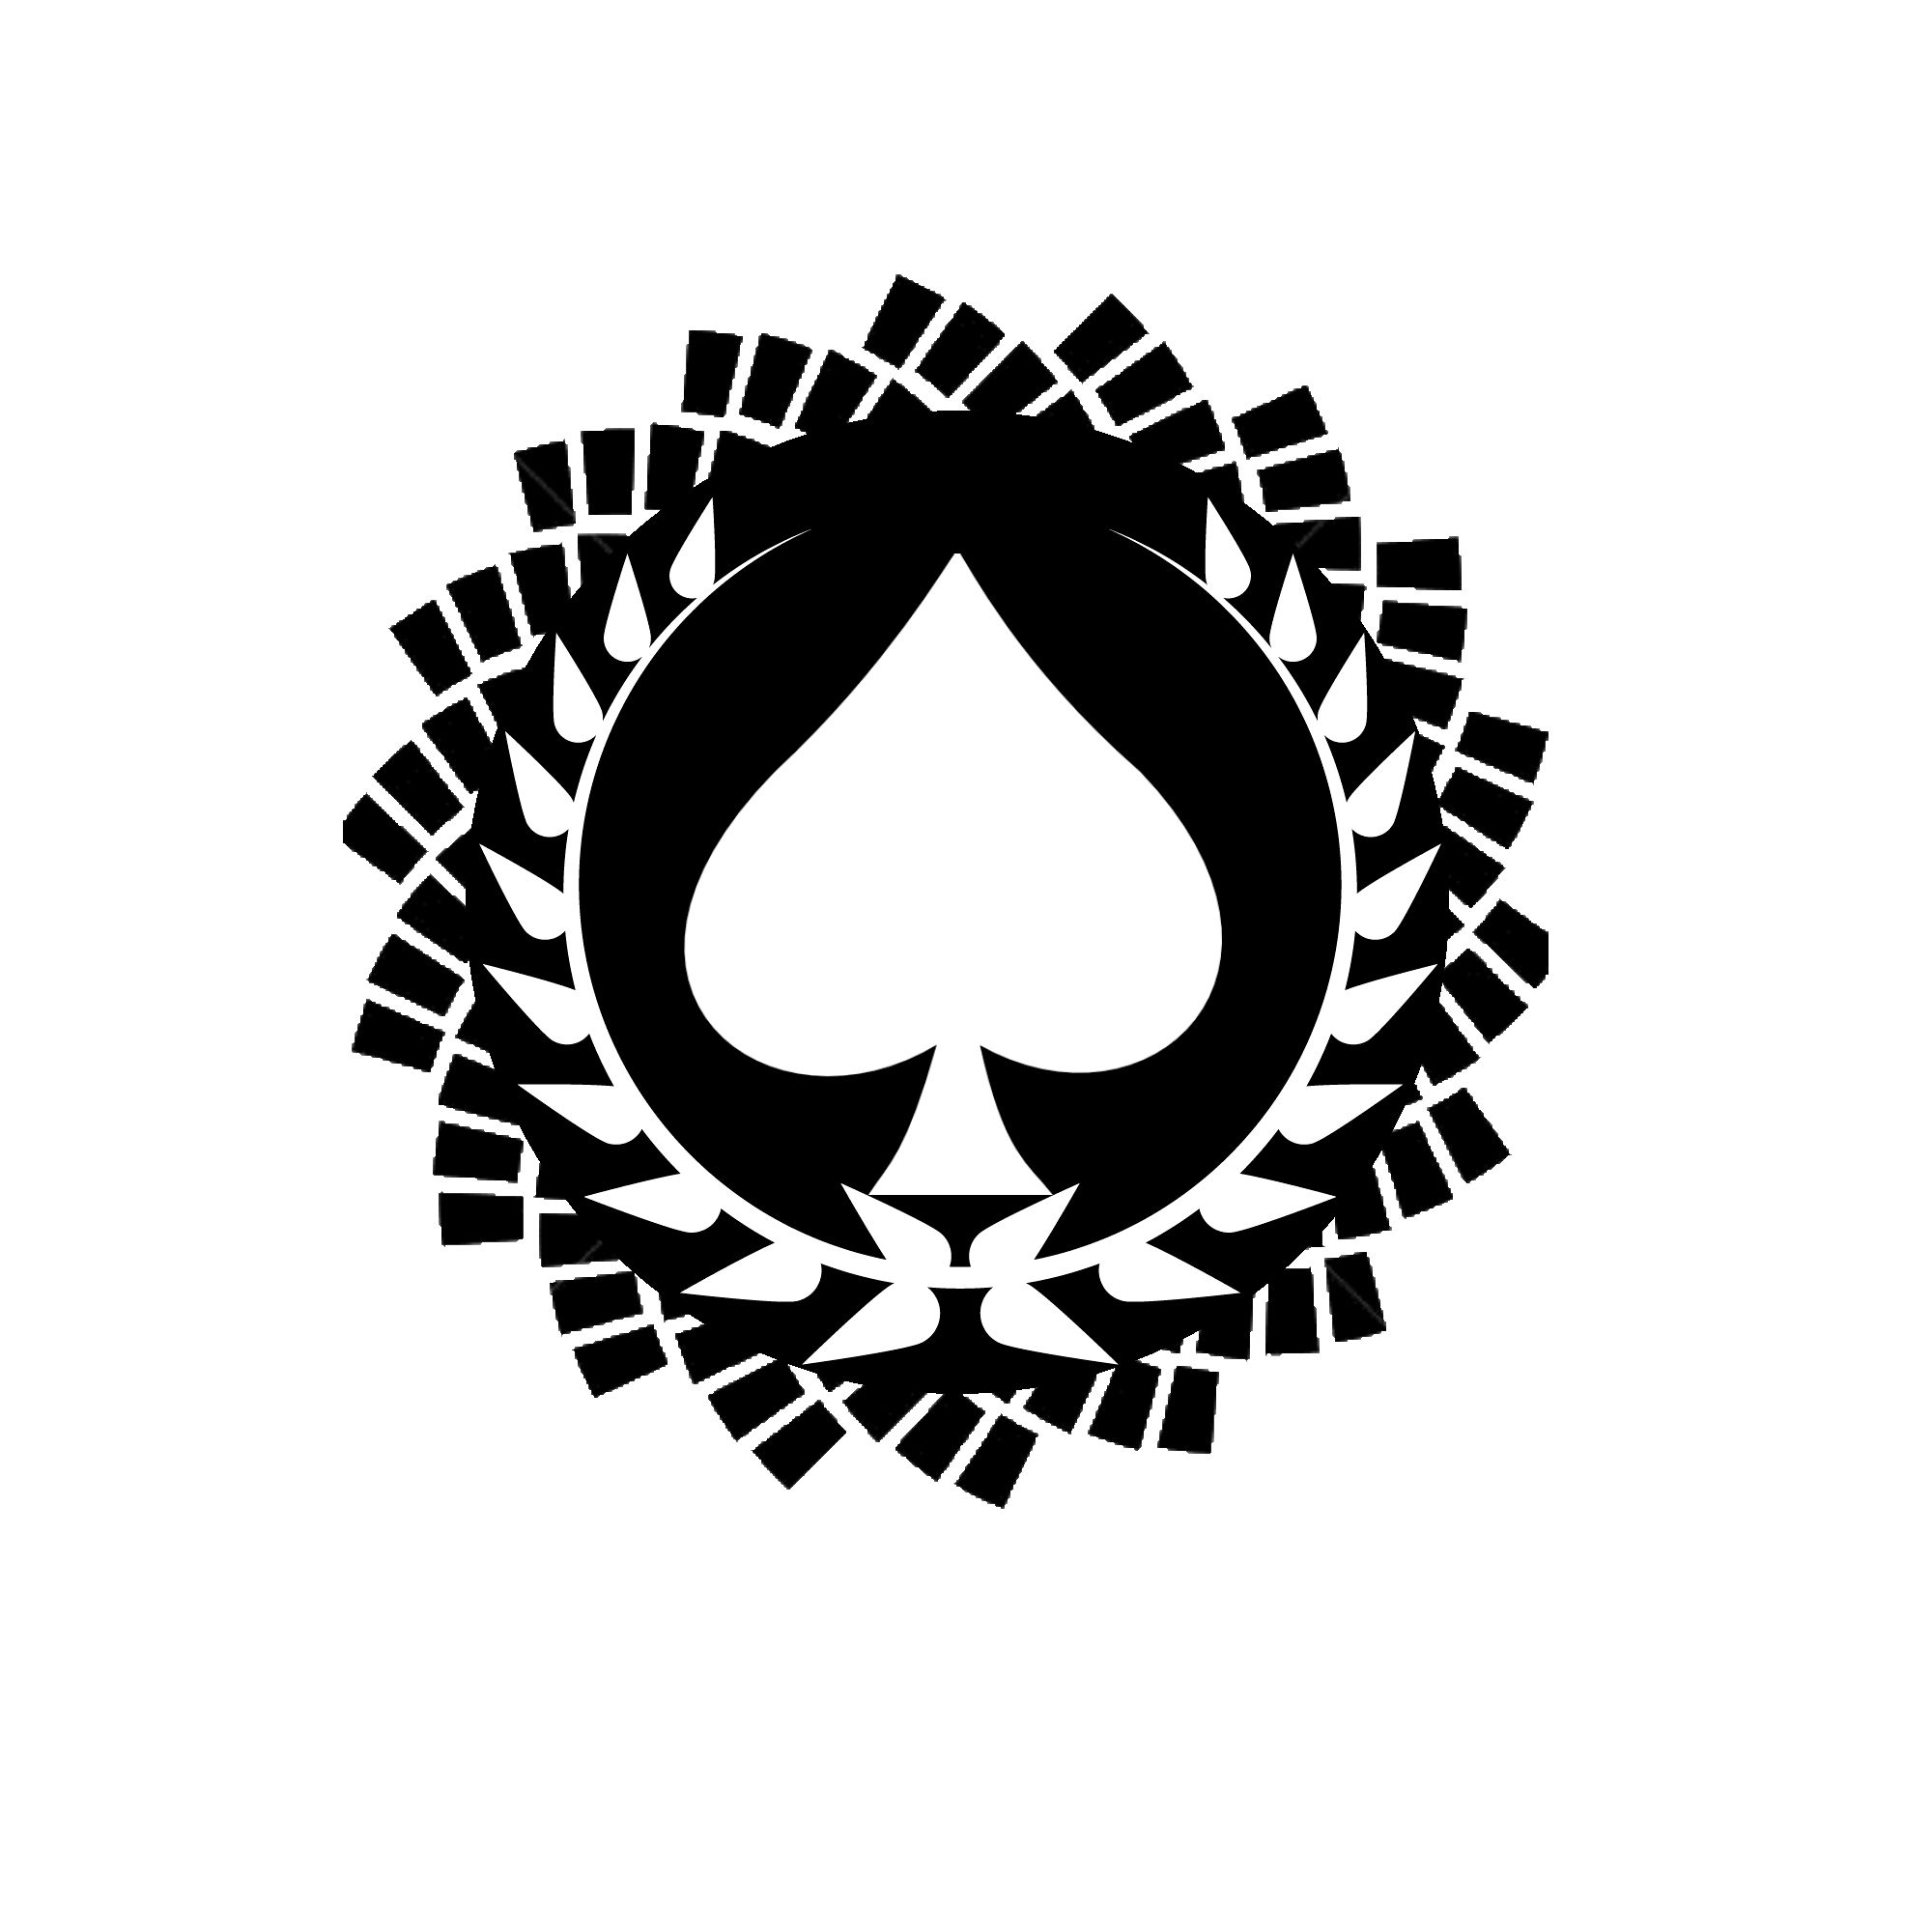 Ace of spades tattoo design by greymatter288 designs interfaces ace of spades tattoo design by greymatter288 designs interfaces tattoo biocorpaavc Choice Image